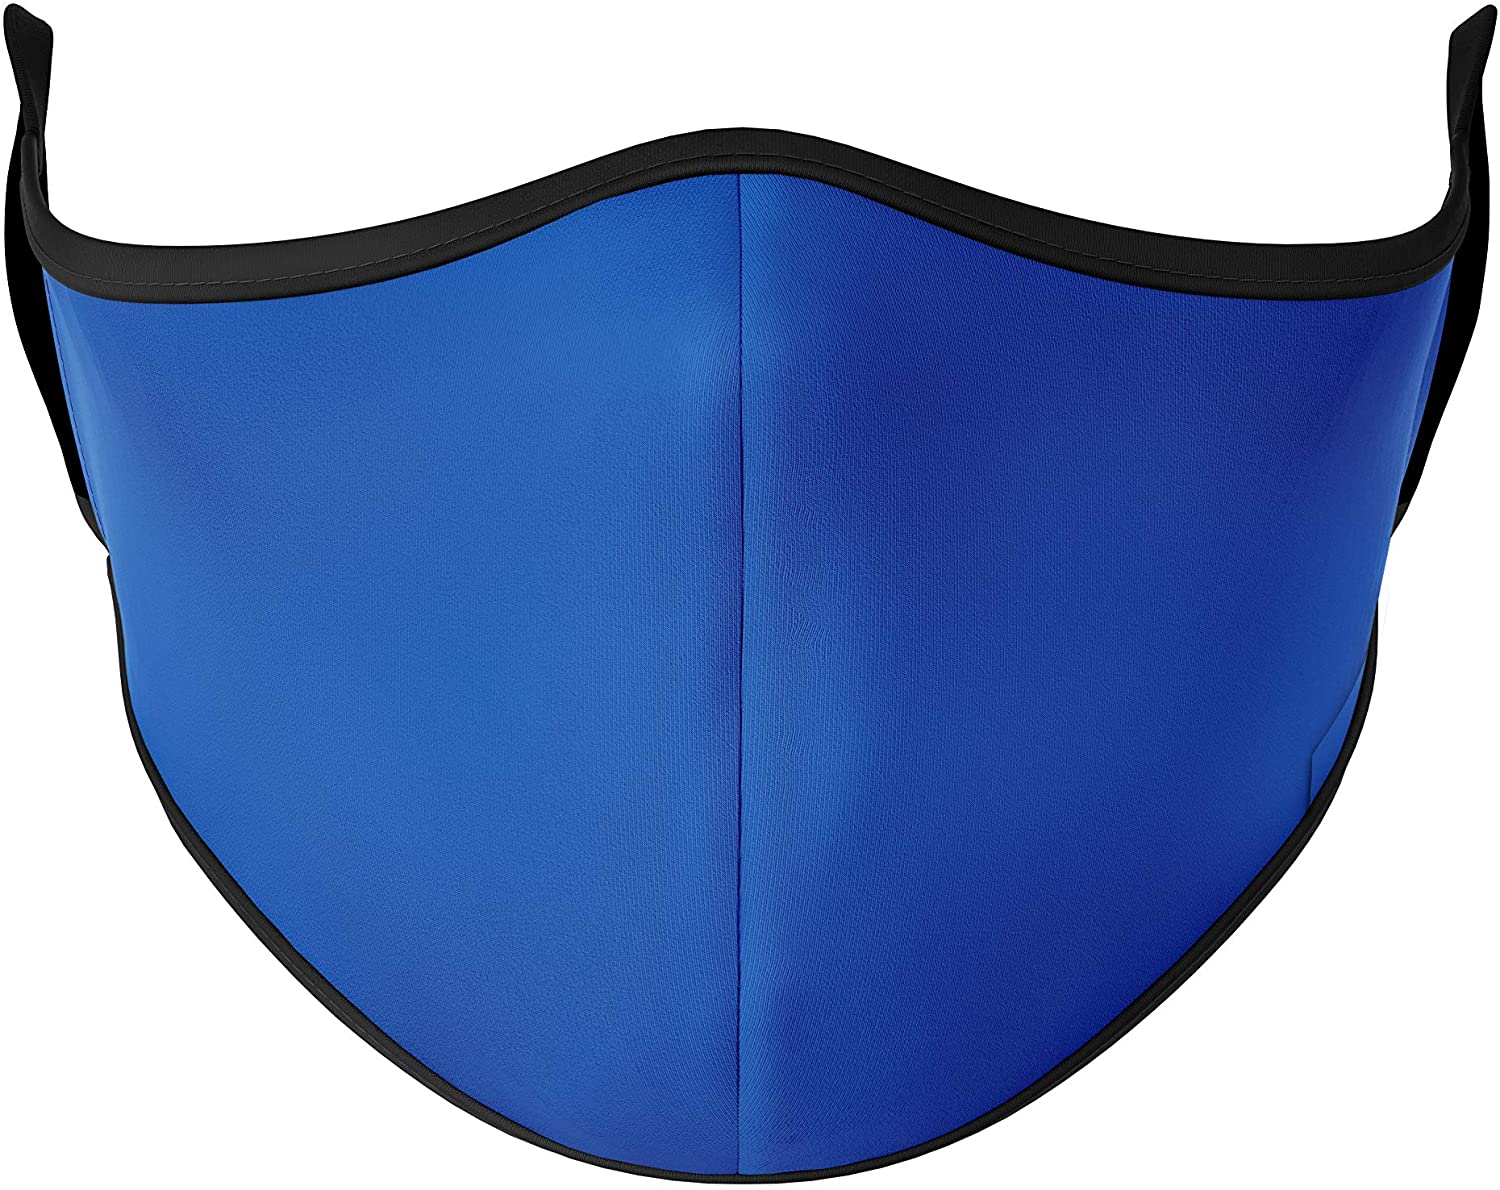 Top Trenz Reusable Face Mask Made with Stretch Cloth for Everyday Use - Indoor/Outdoor Face Cover - Royal Blue - Adult Large